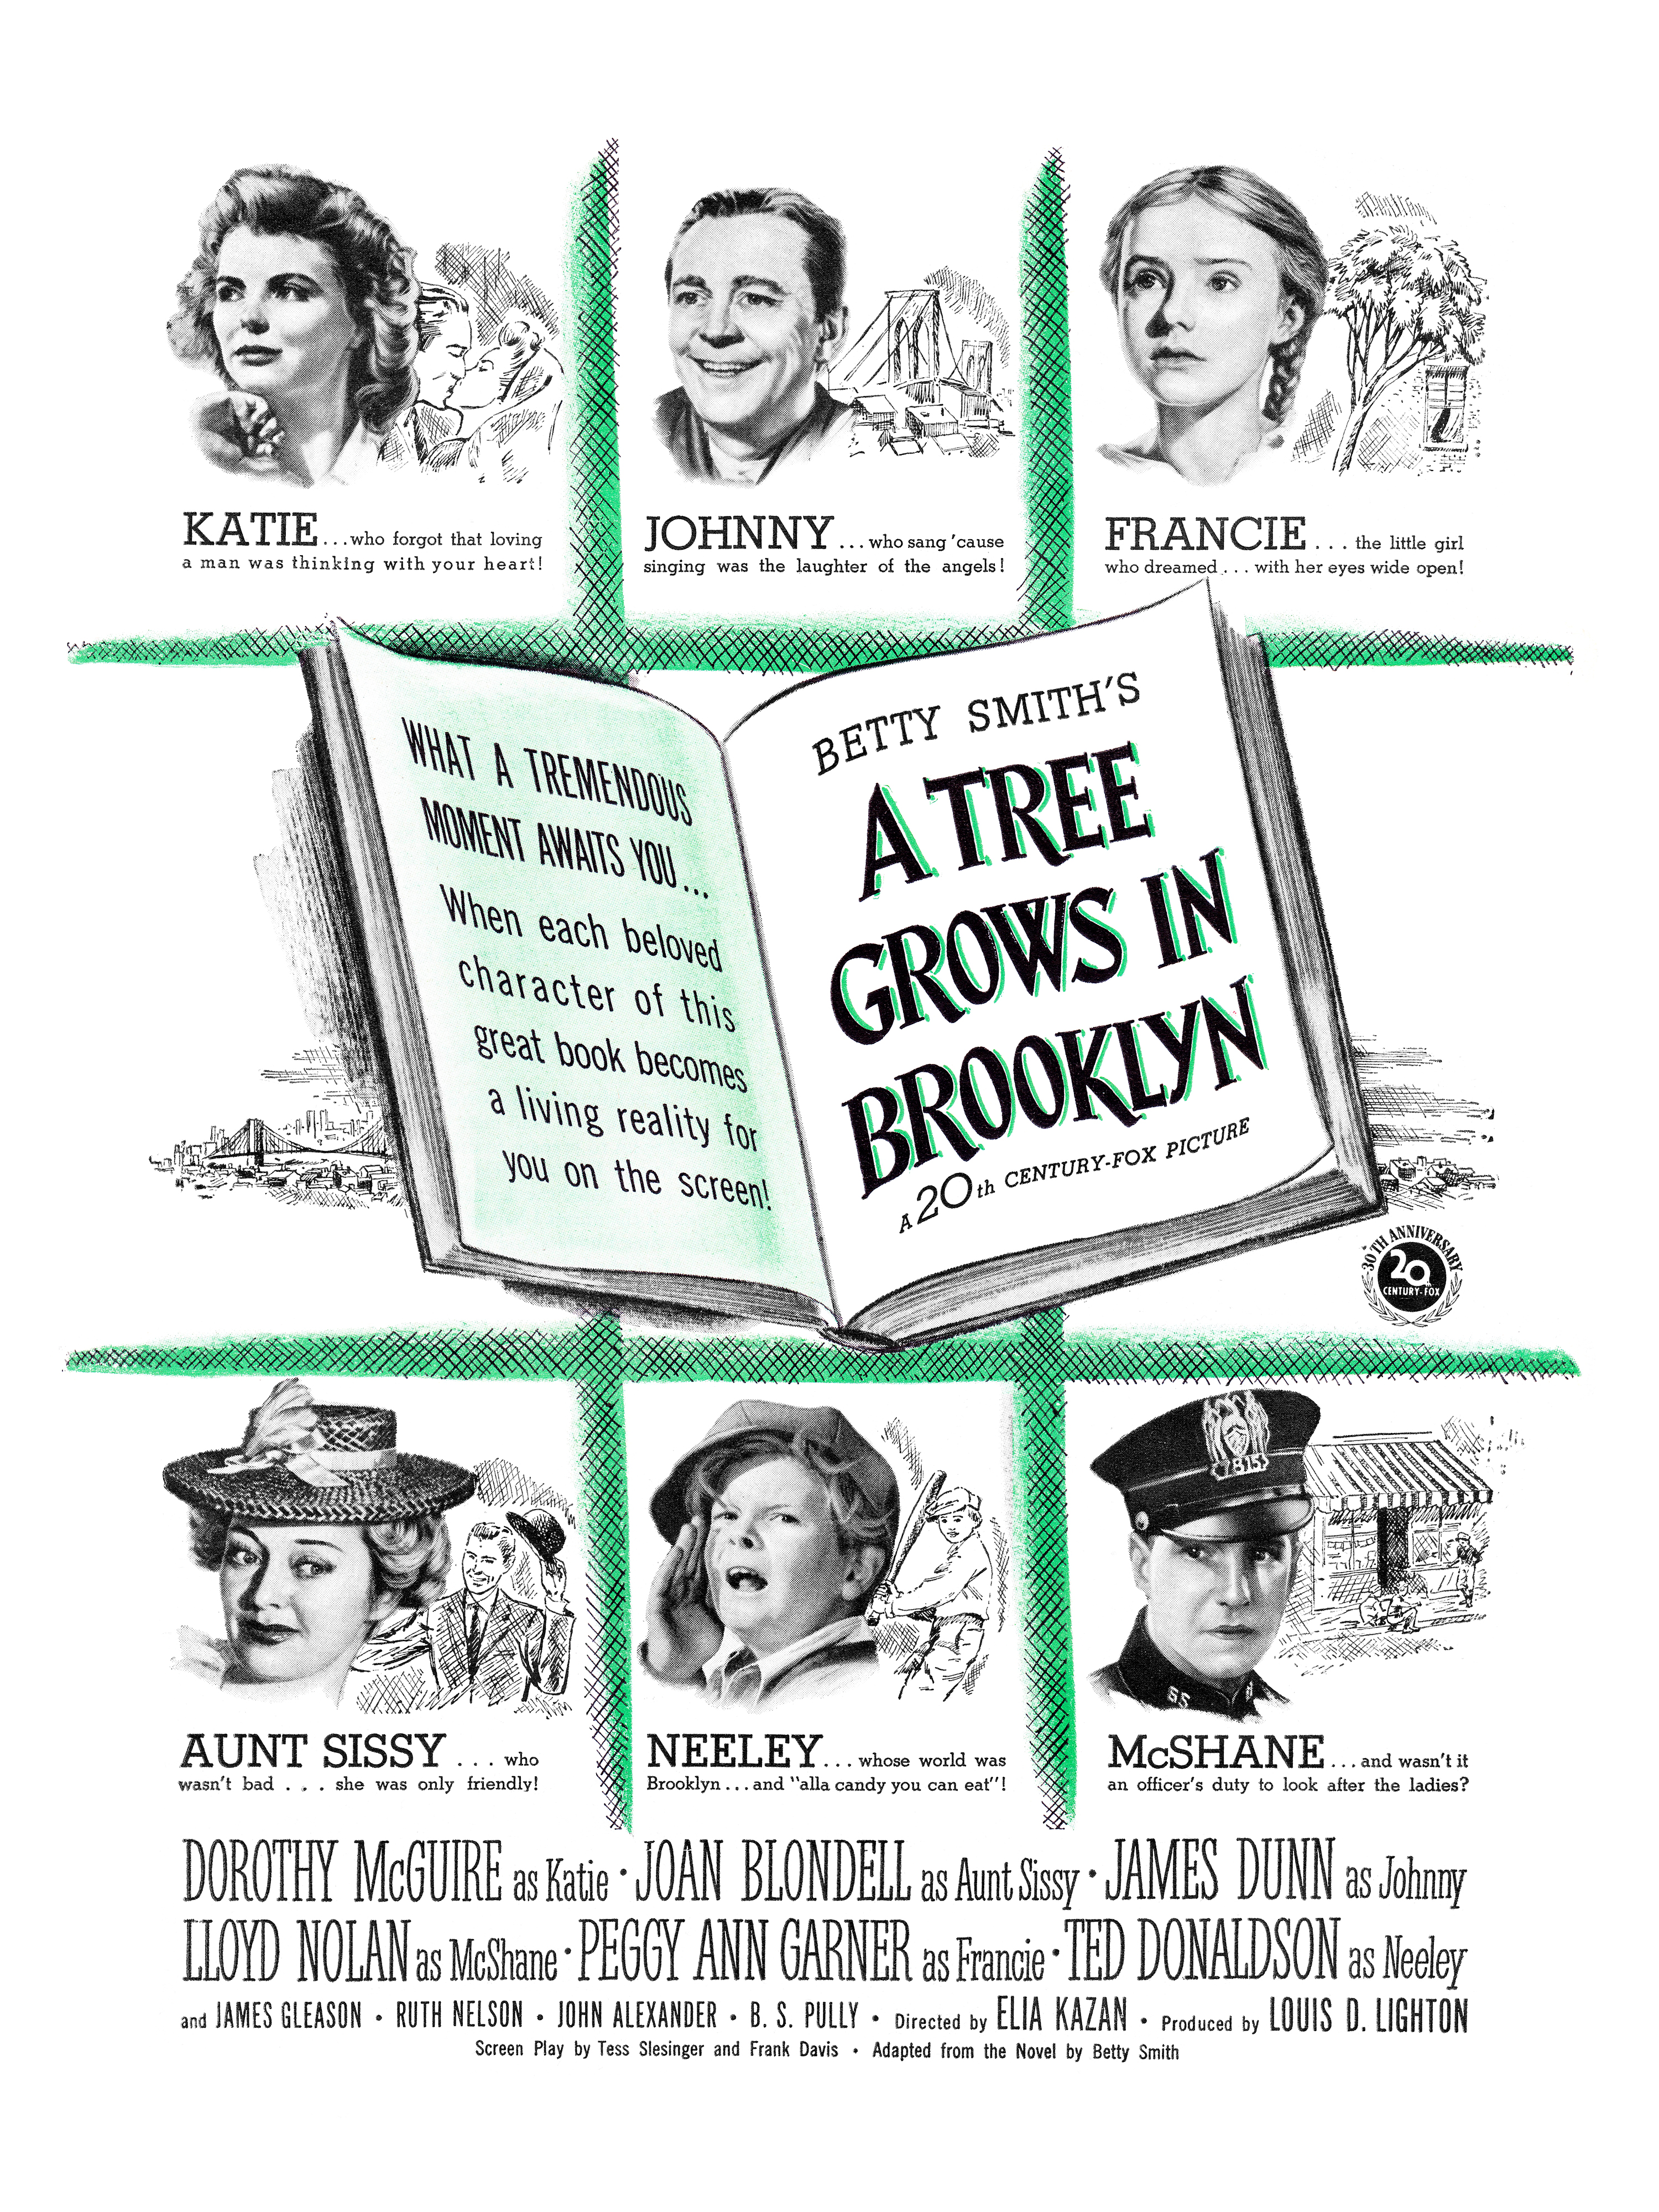 Smith Chart Image: A-Tree-Grows-in-Brooklyn-LIFE-Ad-1945.jpg - Wikimedia Commons,Chart